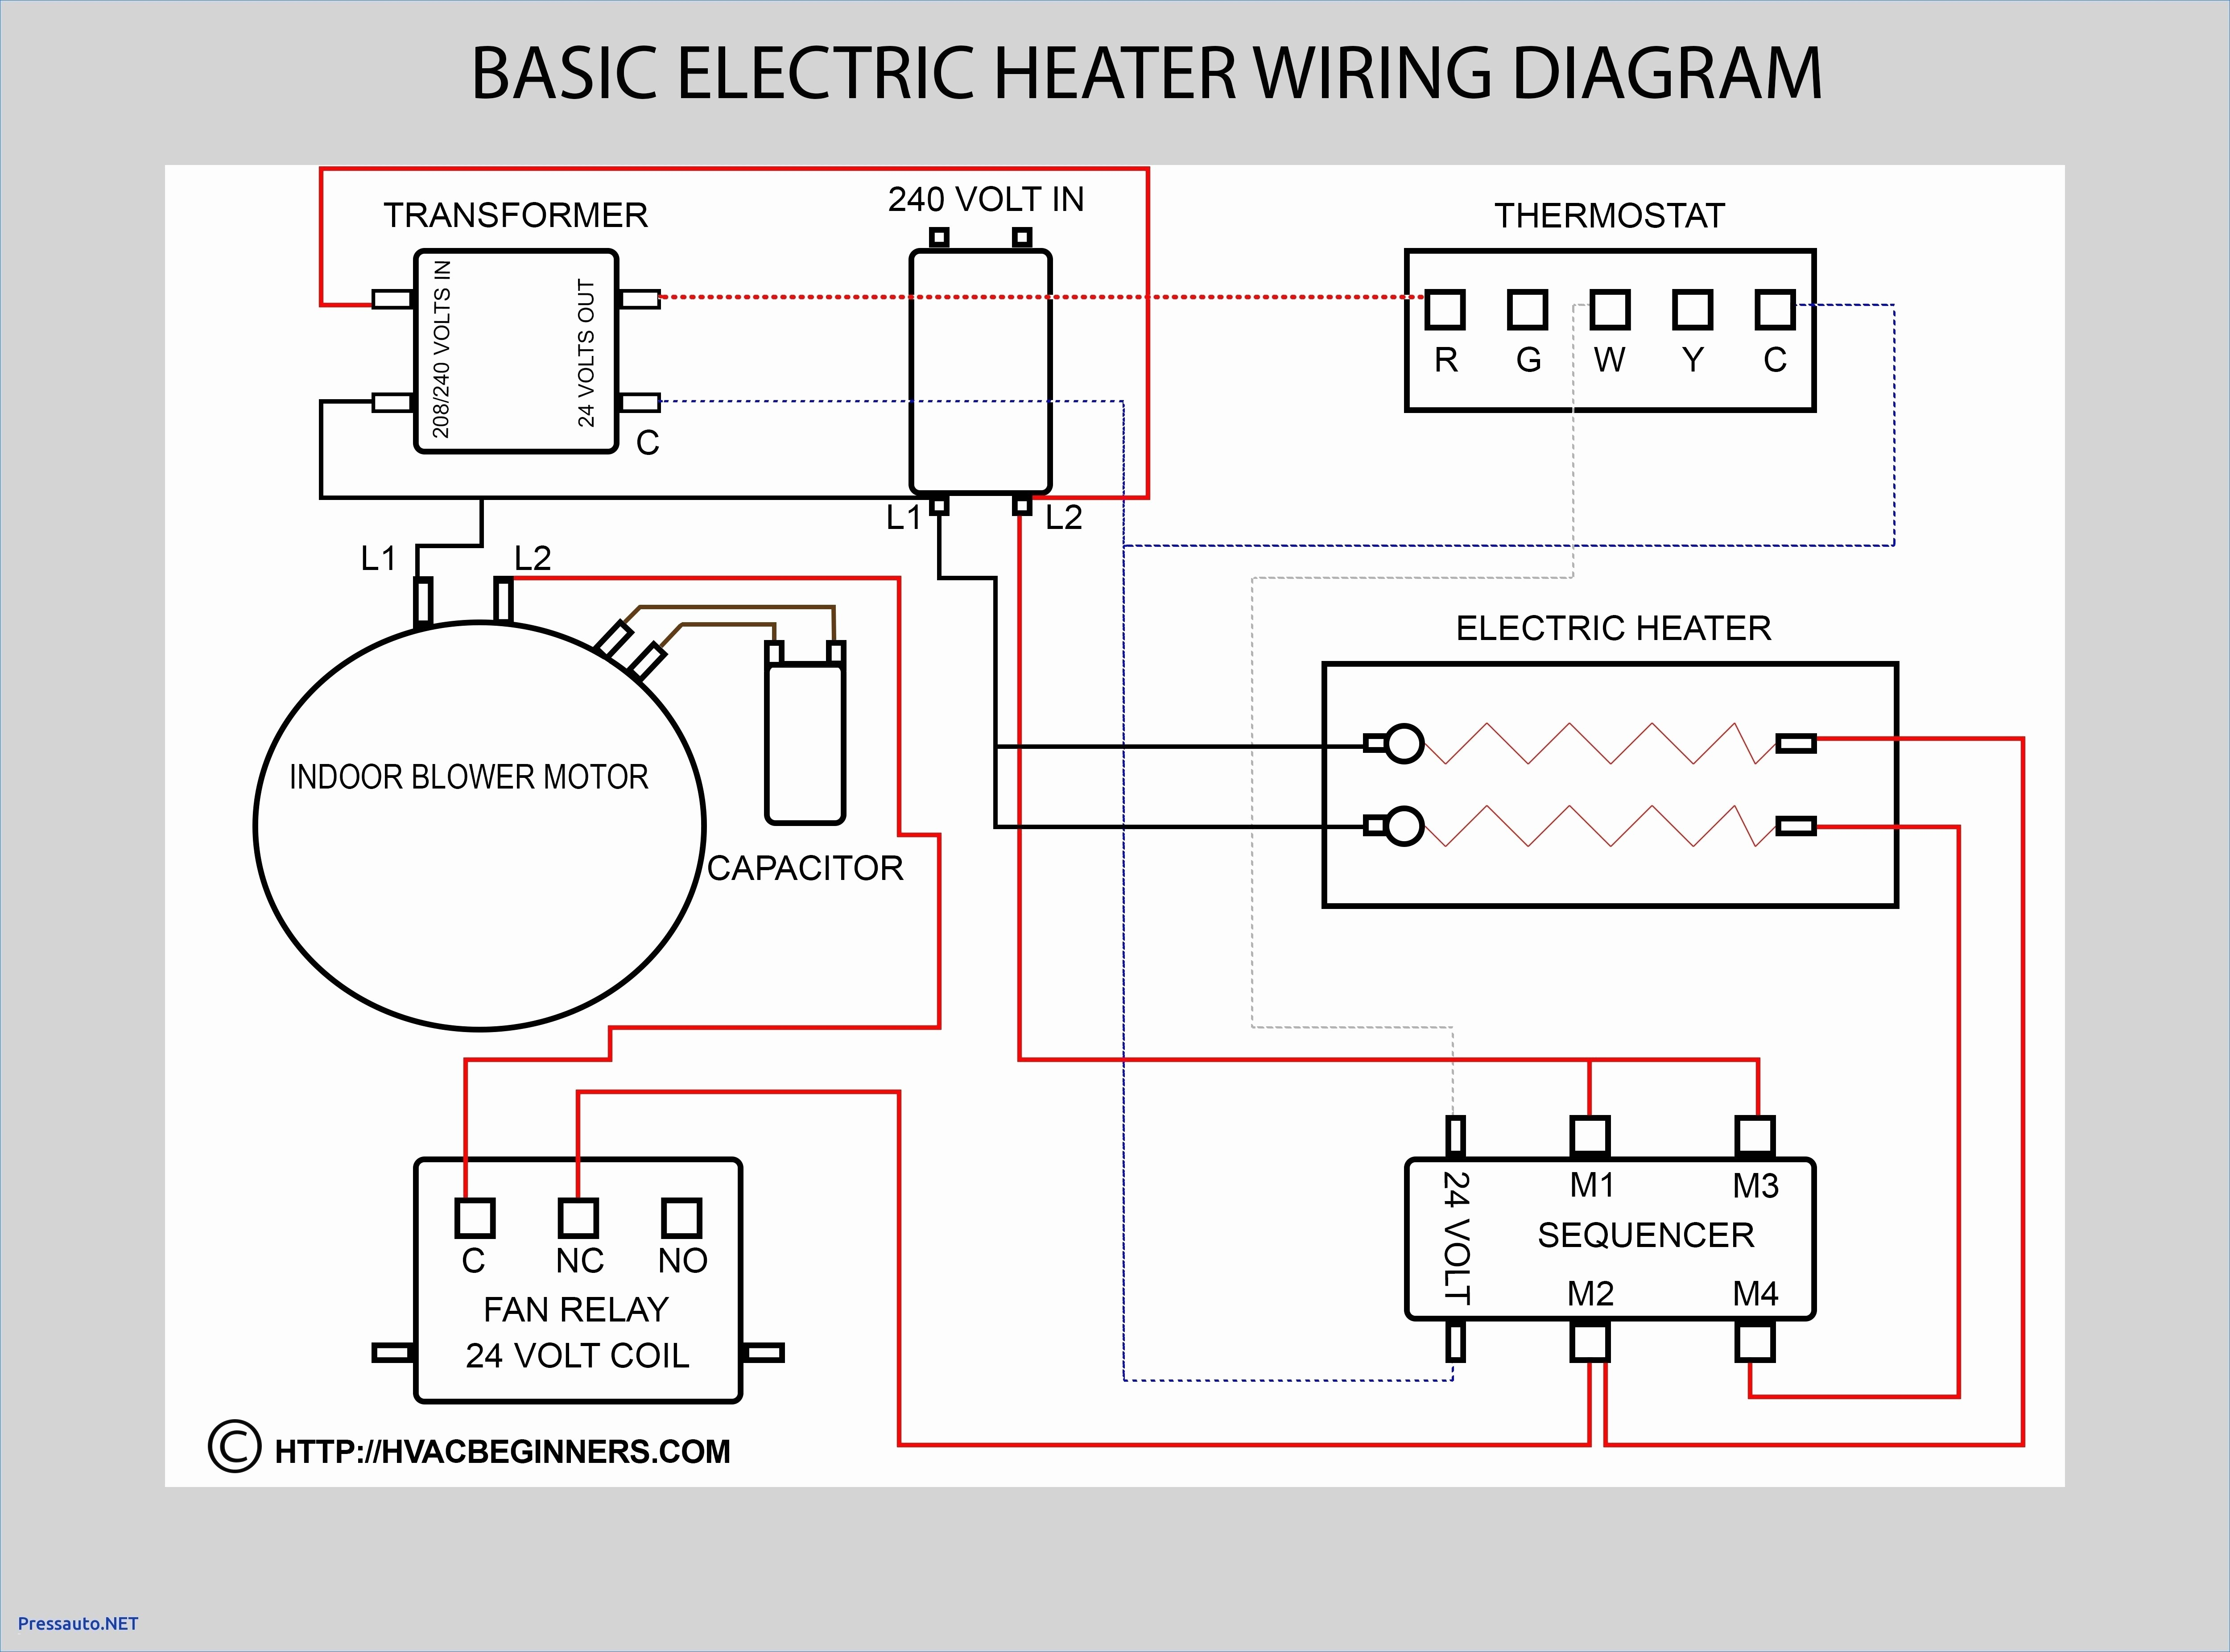 Full Size of Wiring Diagram Belling Cooker Wiring Diagram Luxury Typical Wiring Diagram Best Best